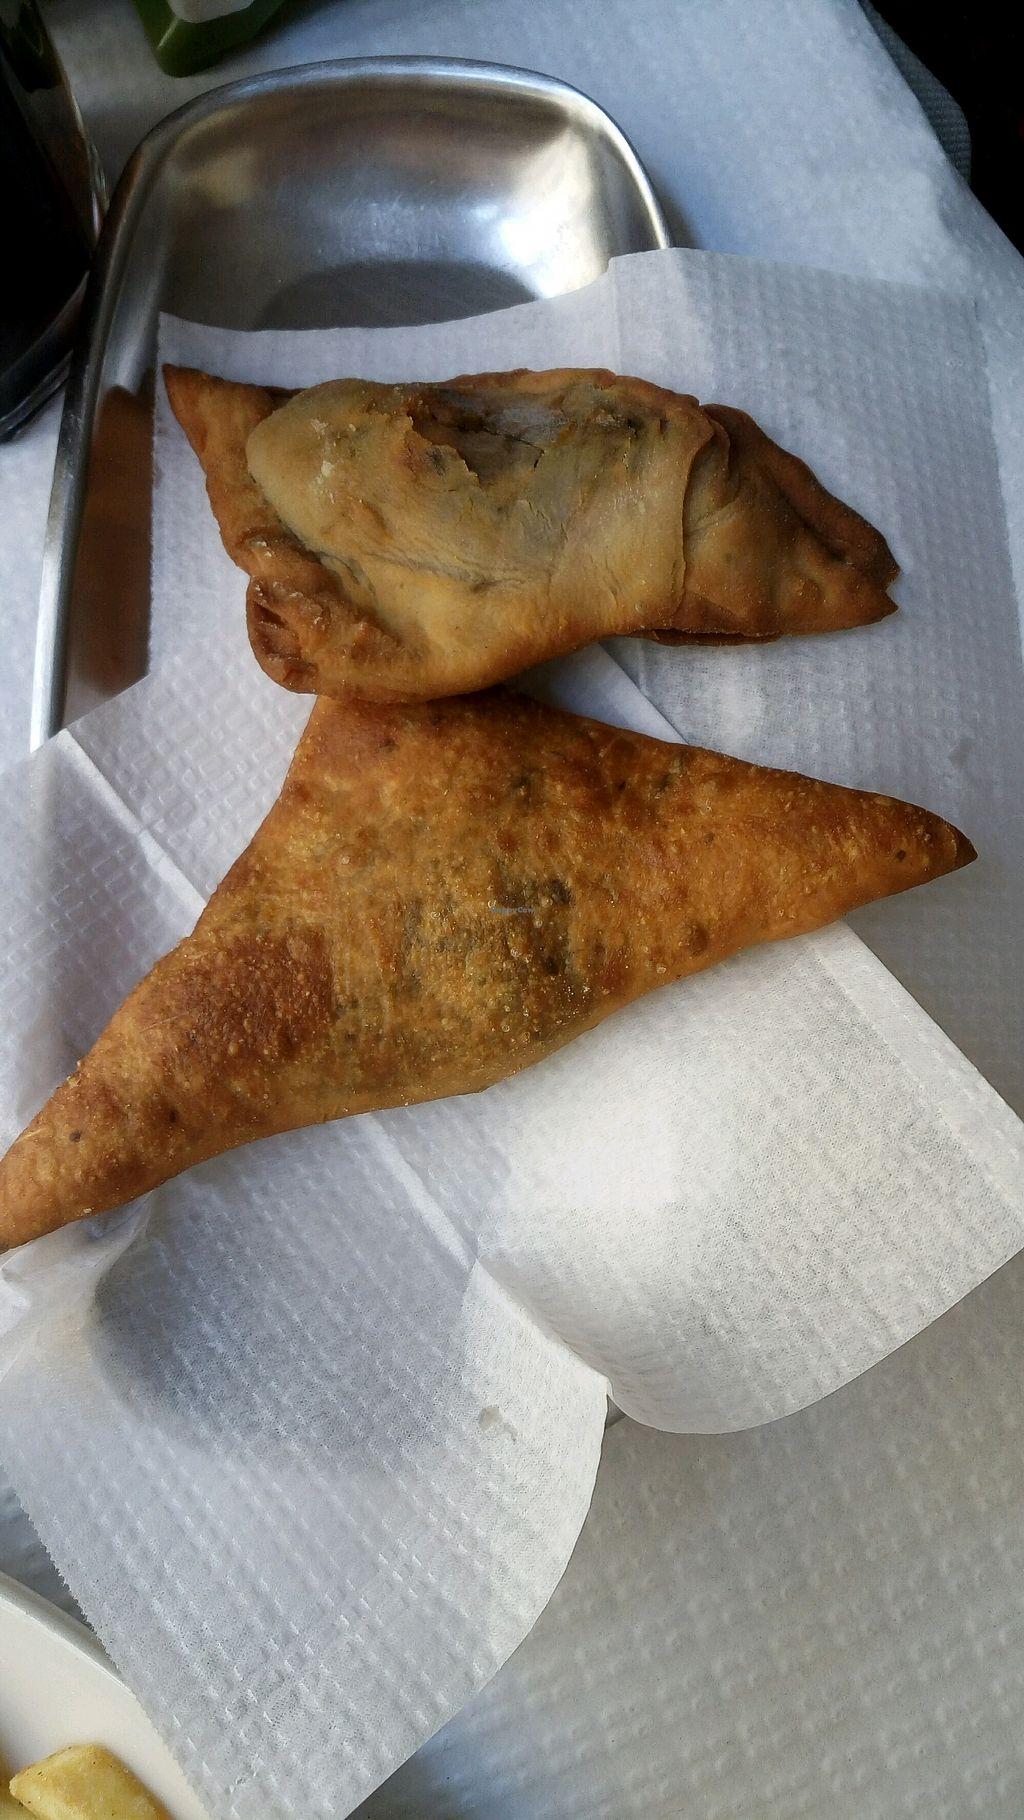 """Photo of Sabores do Sebouh  by <a href=""""/members/profile/%D7%A0%D7%95%D7%A4%D7%A8"""">נופר</a> <br/>kind of empanada <br/> September 16, 2017  - <a href='/contact/abuse/image/37498/305005'>Report</a>"""